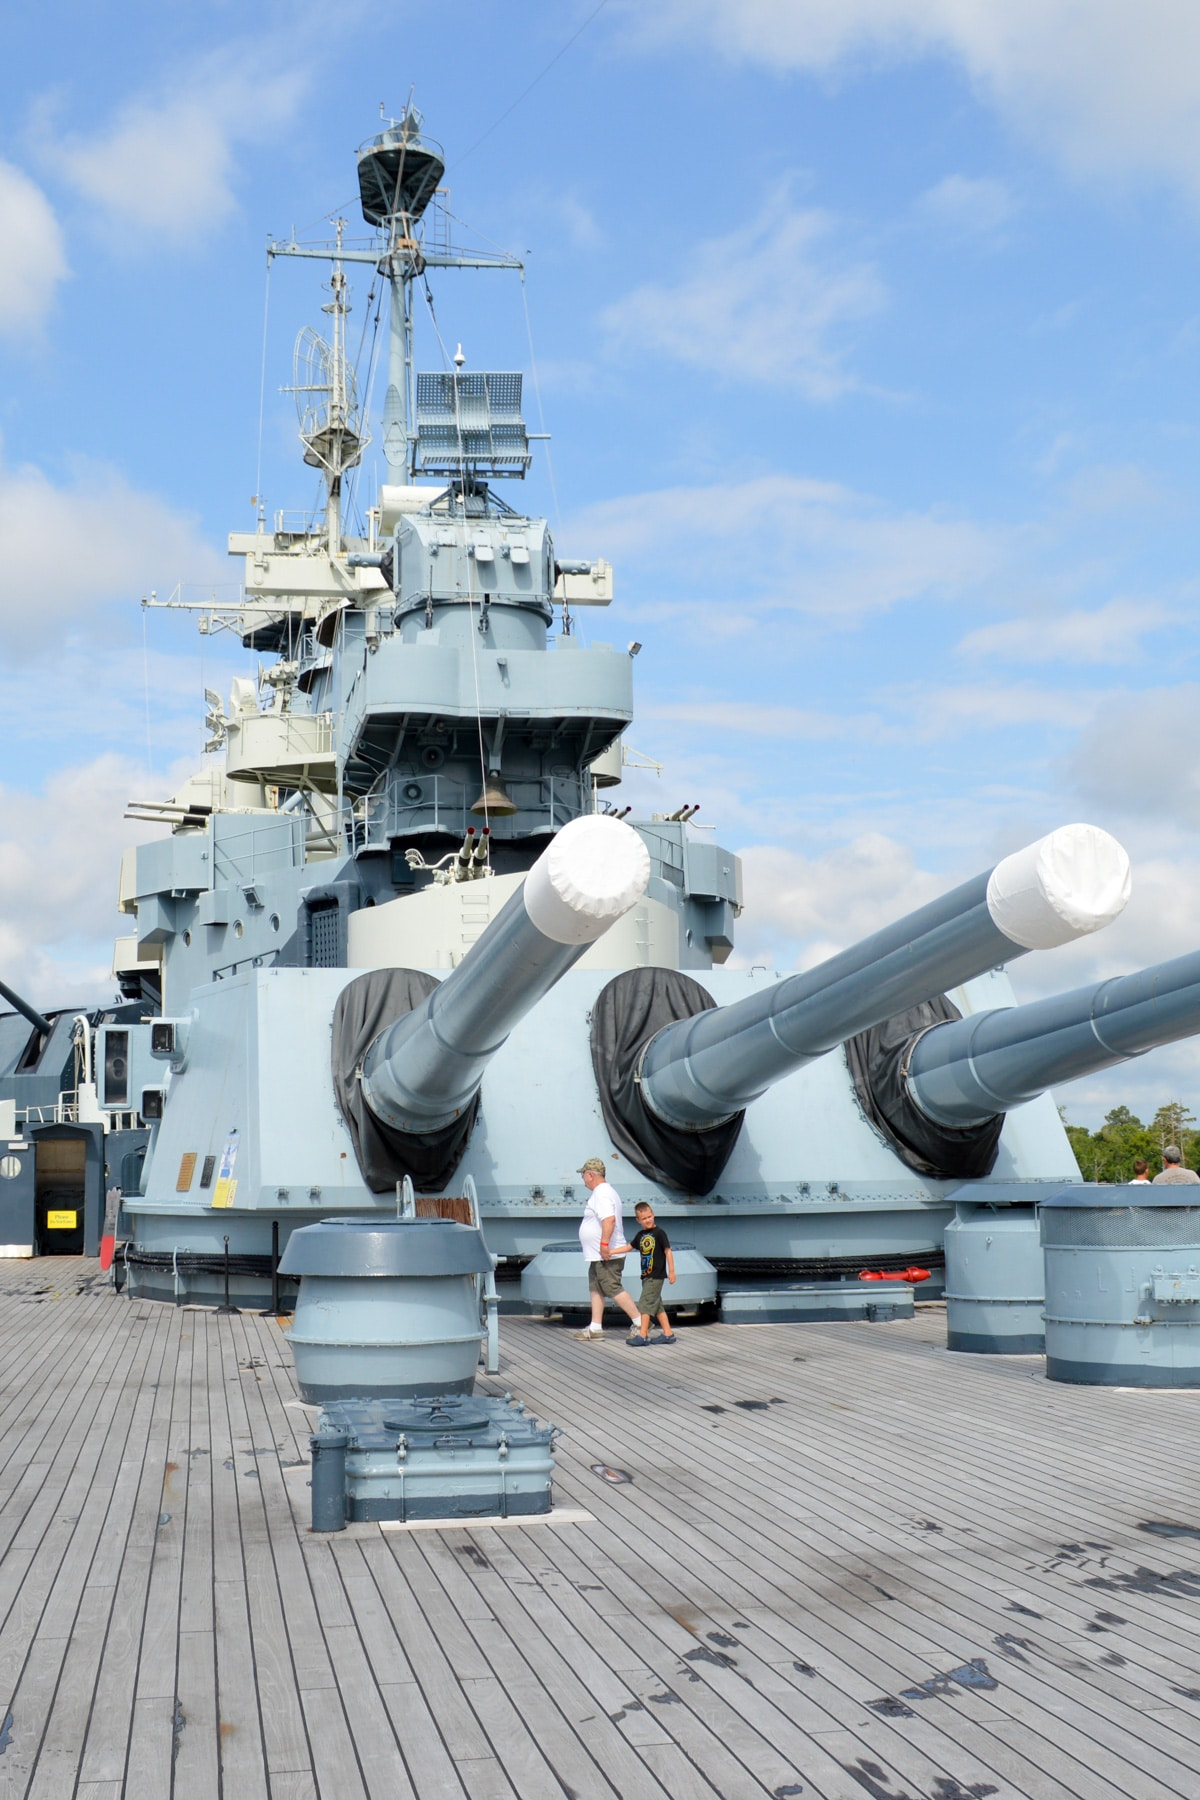 Make a daytrip to Wilmington, NC to visit the USS North Carolina Battleship and the Wilmington area breweries. It's the perfect afternoon!